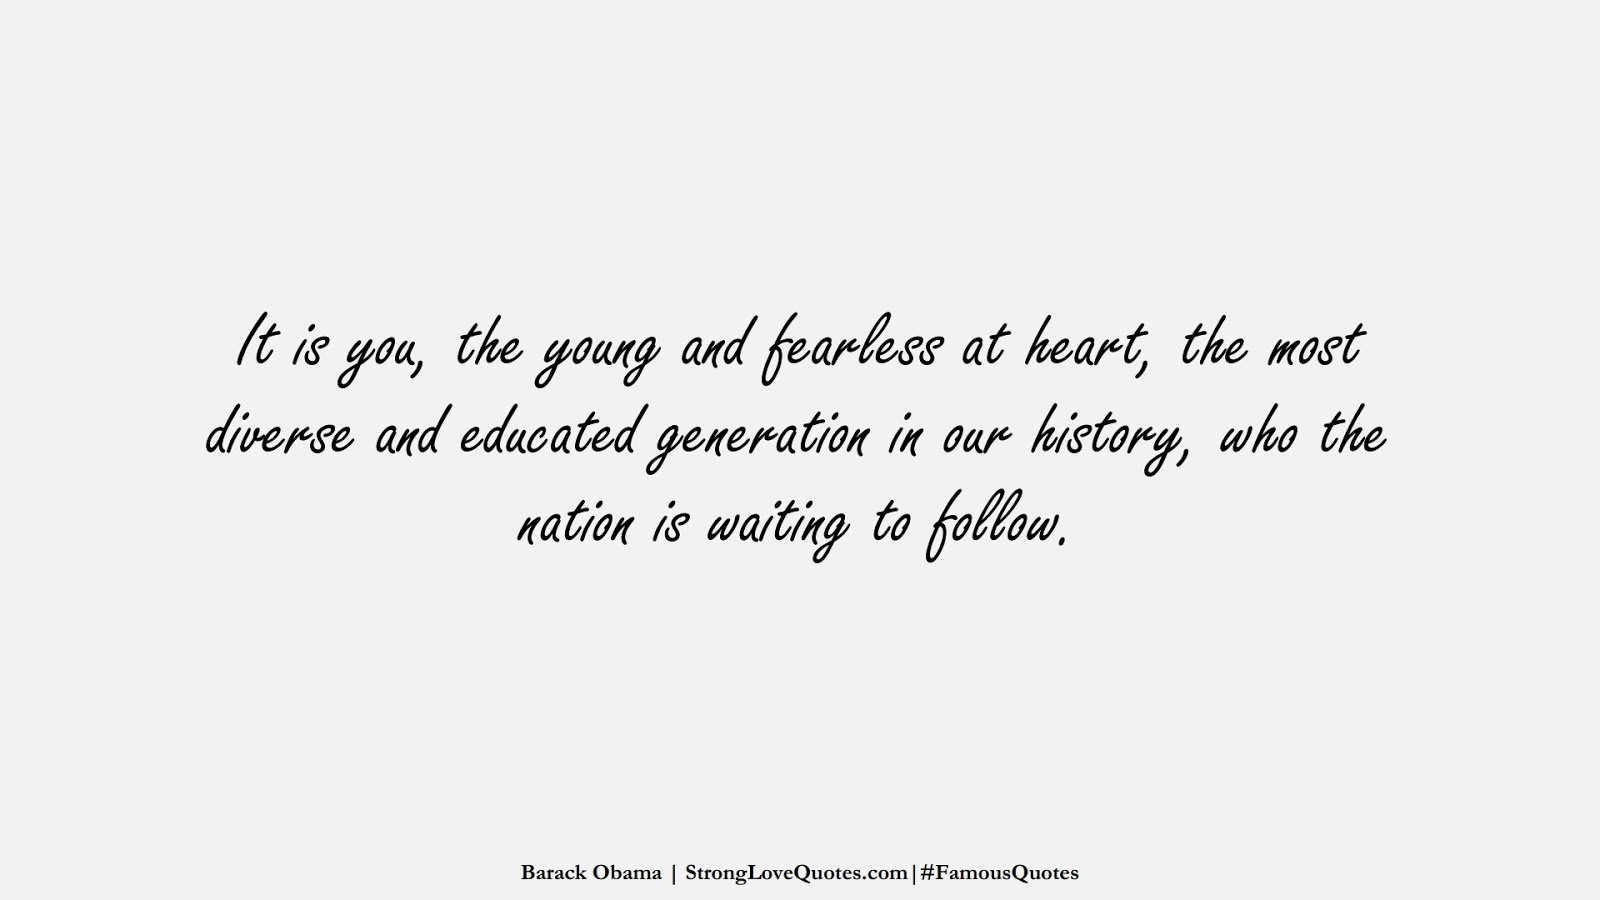 It is you, the young and fearless at heart, the most diverse and educated generation in our history, who the nation is waiting to follow. (Barack Obama);  #FamousQuotes